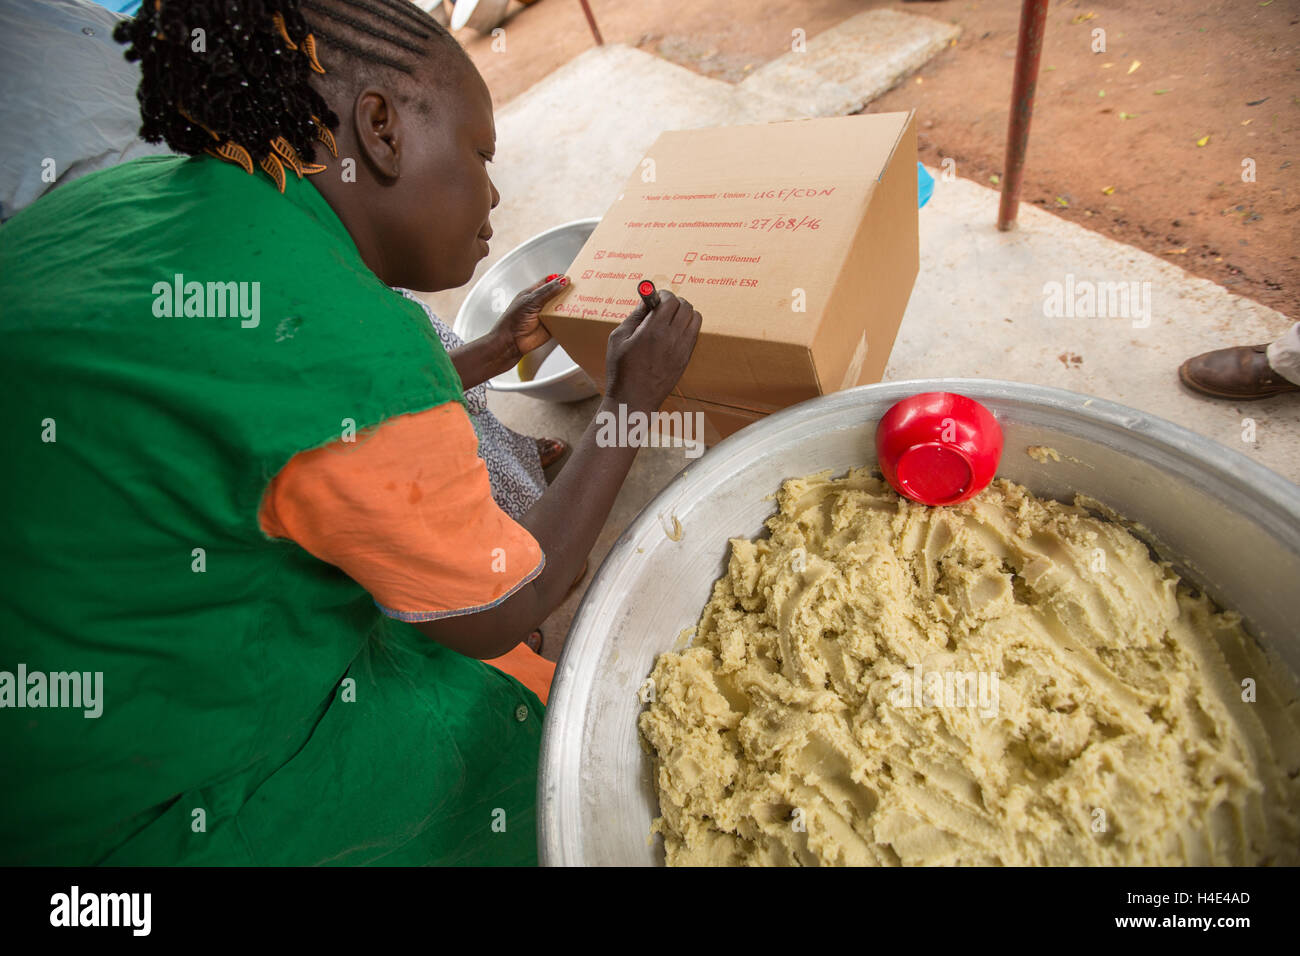 Shea butter is made at a fair trade production facilitity in Réo, Burkina Faso, West Africa. Stock Photo